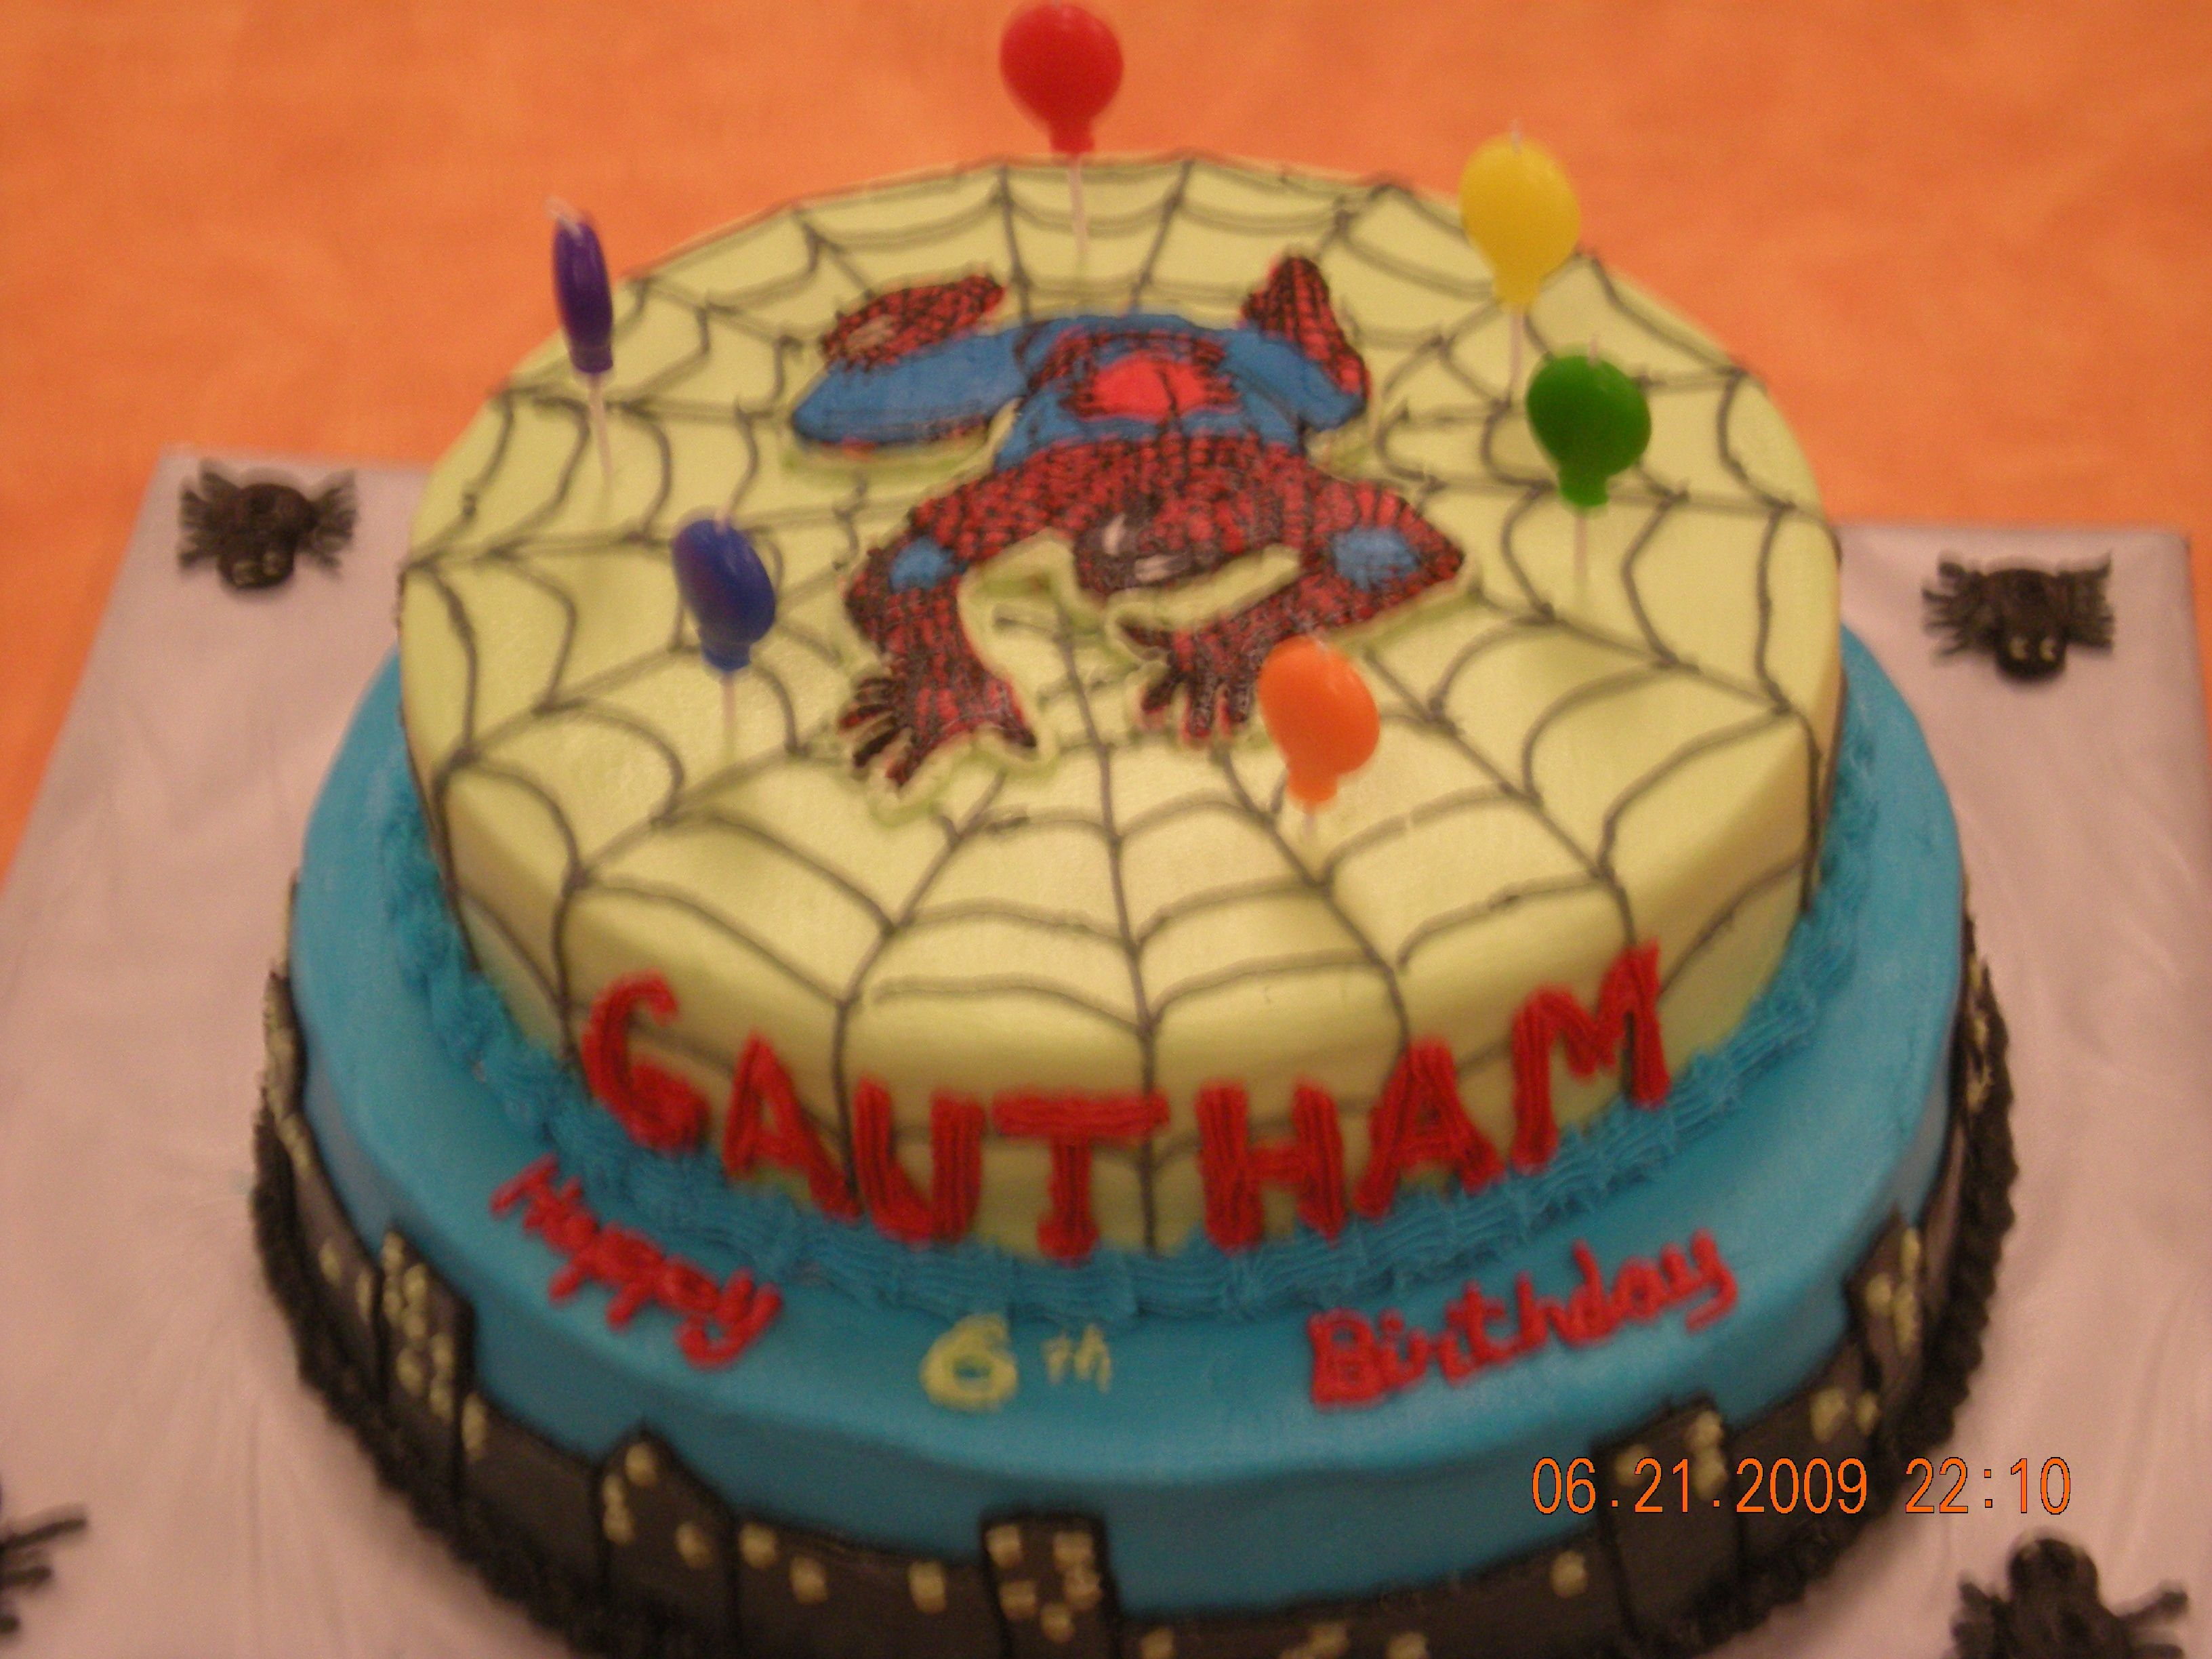 Spiderman Cake The spiderman is FBCT. I got a lot of inspiration for this from many awesome cakes on this website.